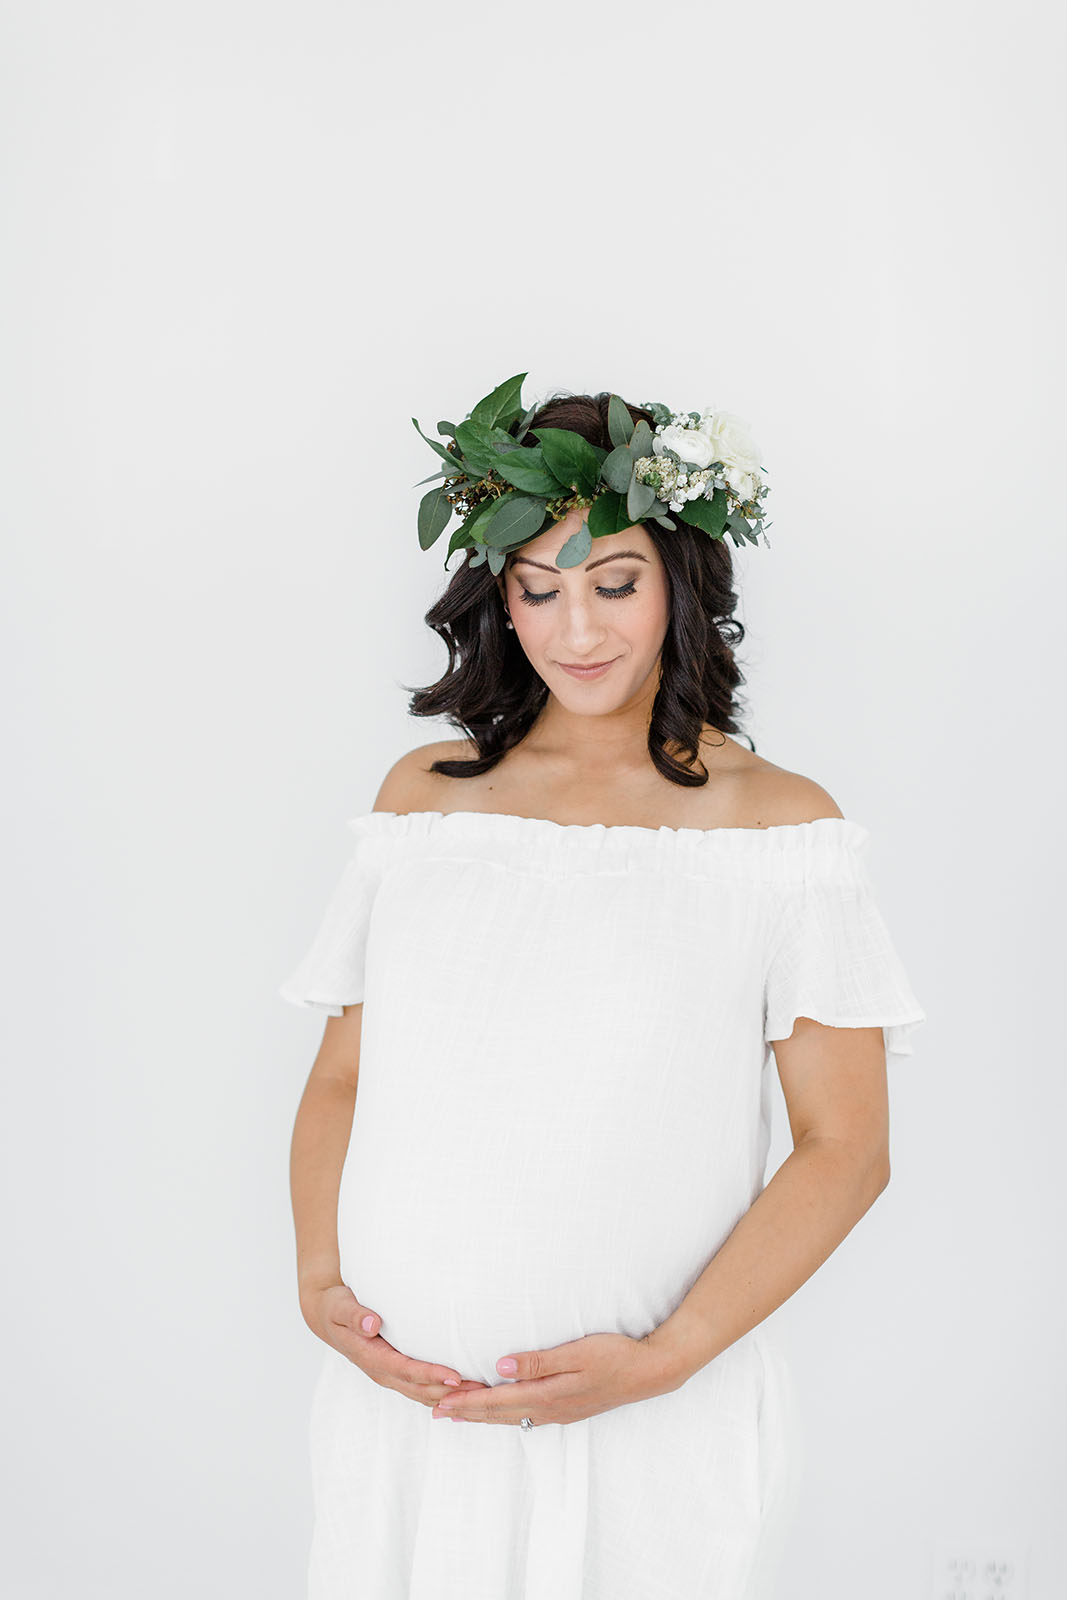 pregnant woman in flower crown Kelly Laramore Photography 2017